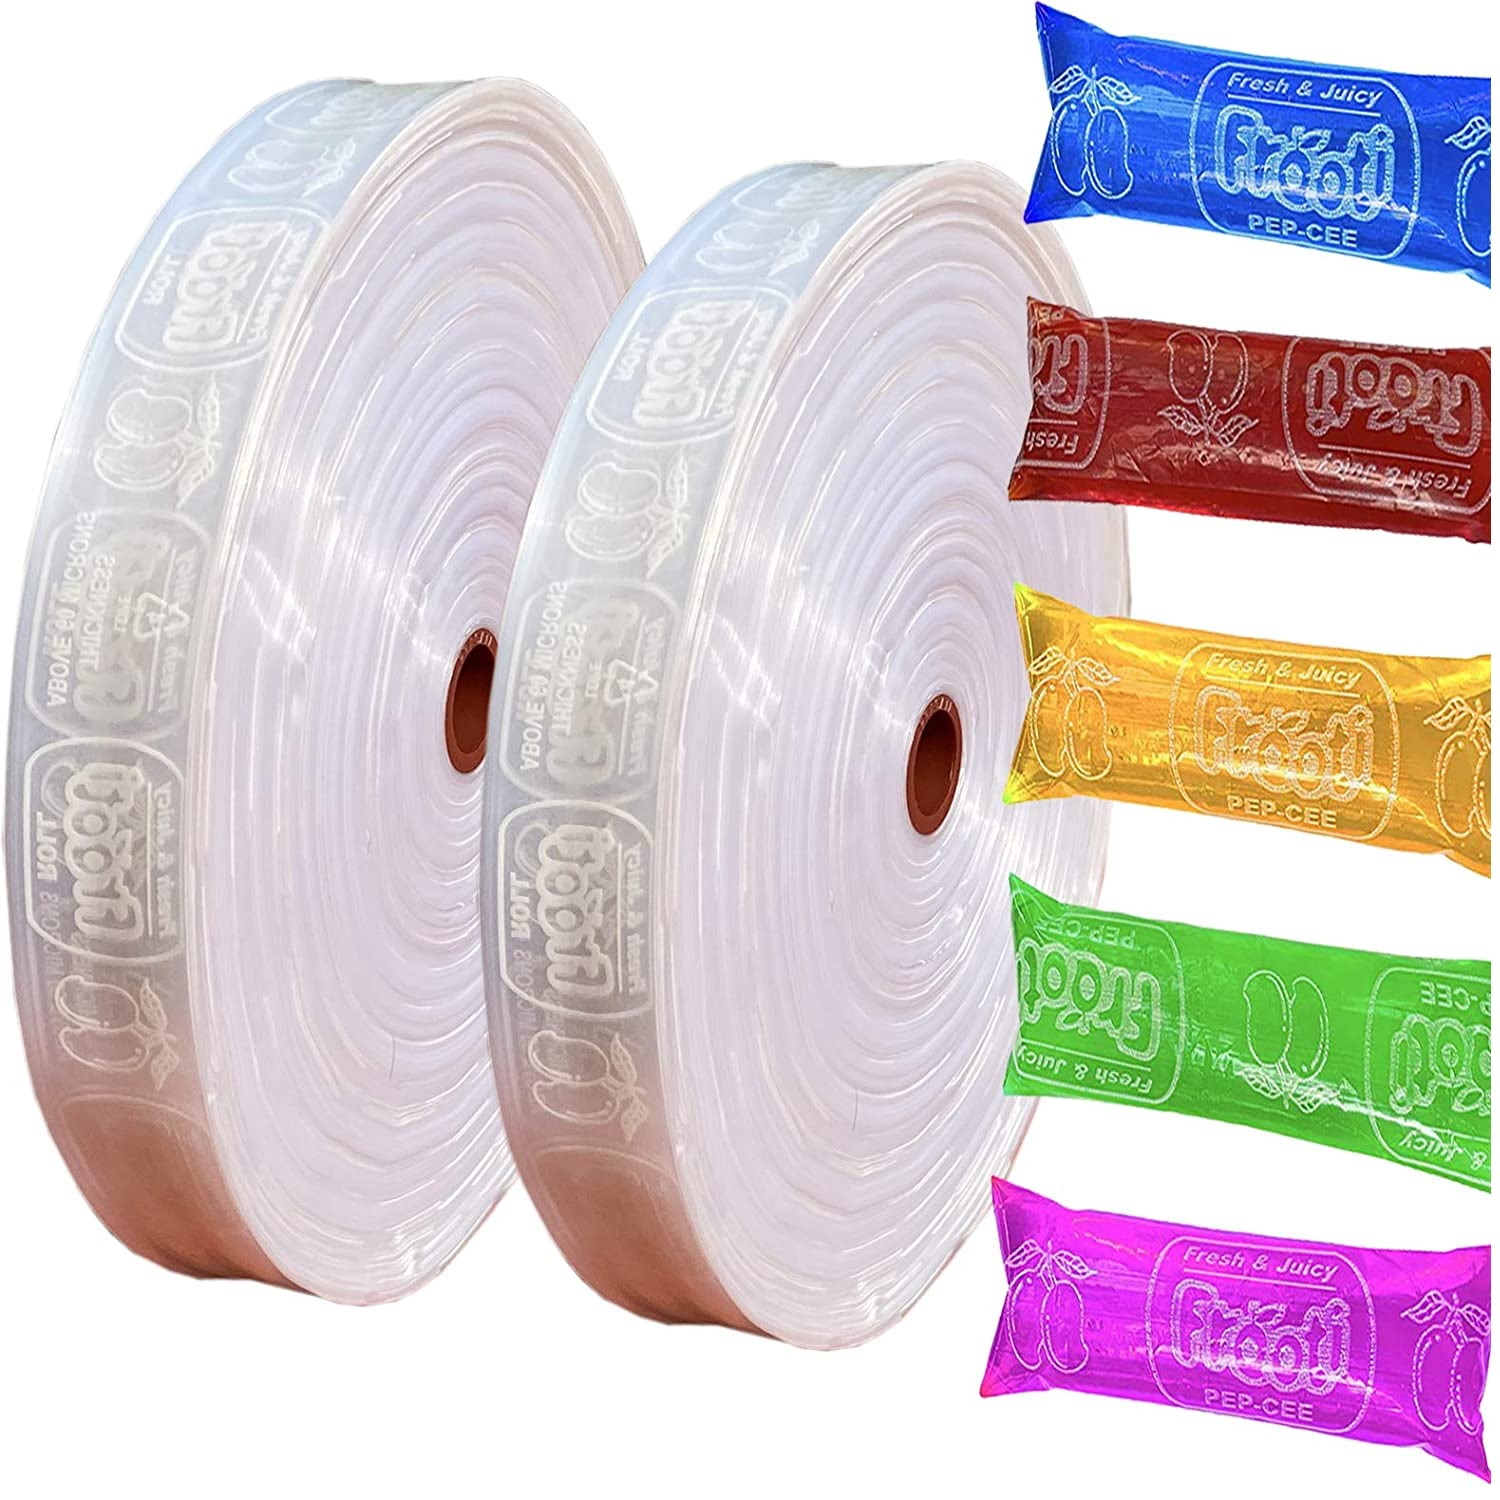 Pepsi Candy Roll, ,Pepsi Packing Roll, Liquid Candy Making Roll 60 Micron100% Pure Virgin LDPE Packing Material.